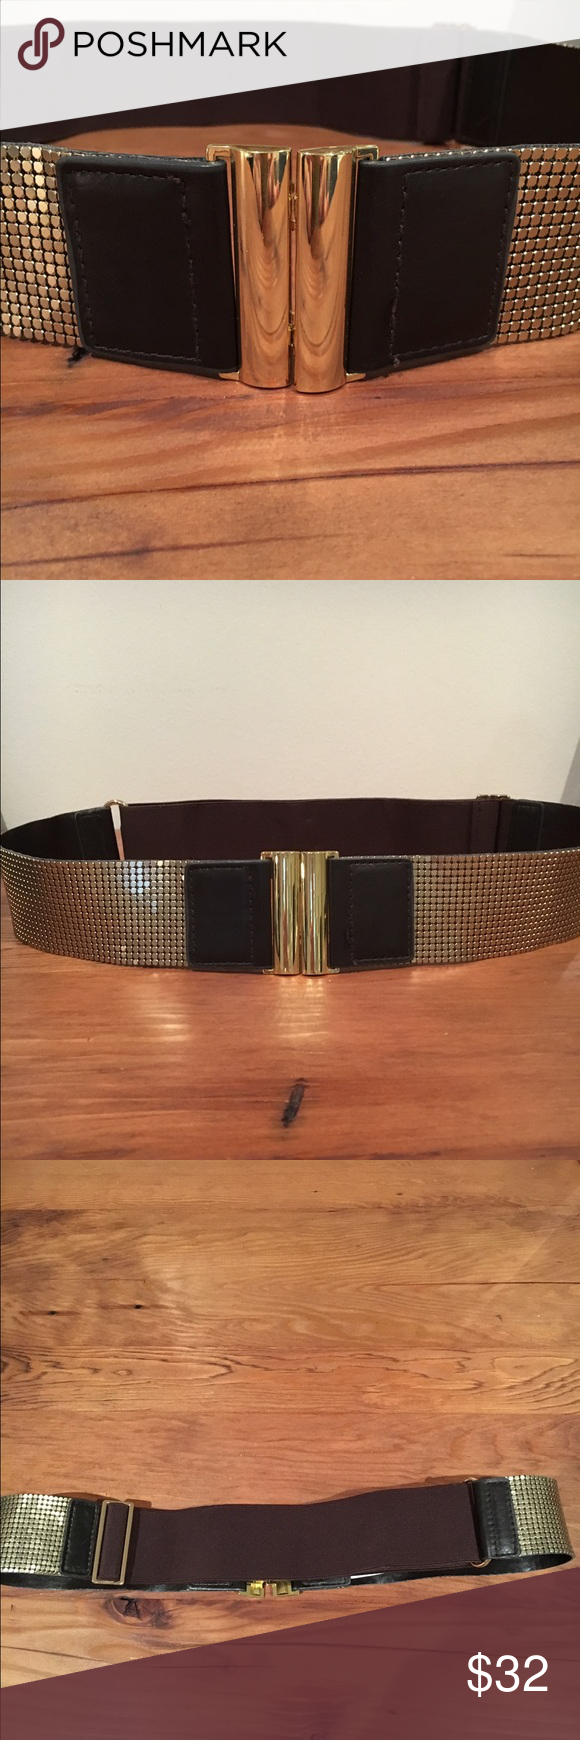 BCBG adjustable gold belt This is a beautiful belt from BCBG. I love that it's adjustable as you can cinch a dress or sweater at the waist. So classy and dresses up any outfit. BCBG Accessories Belts